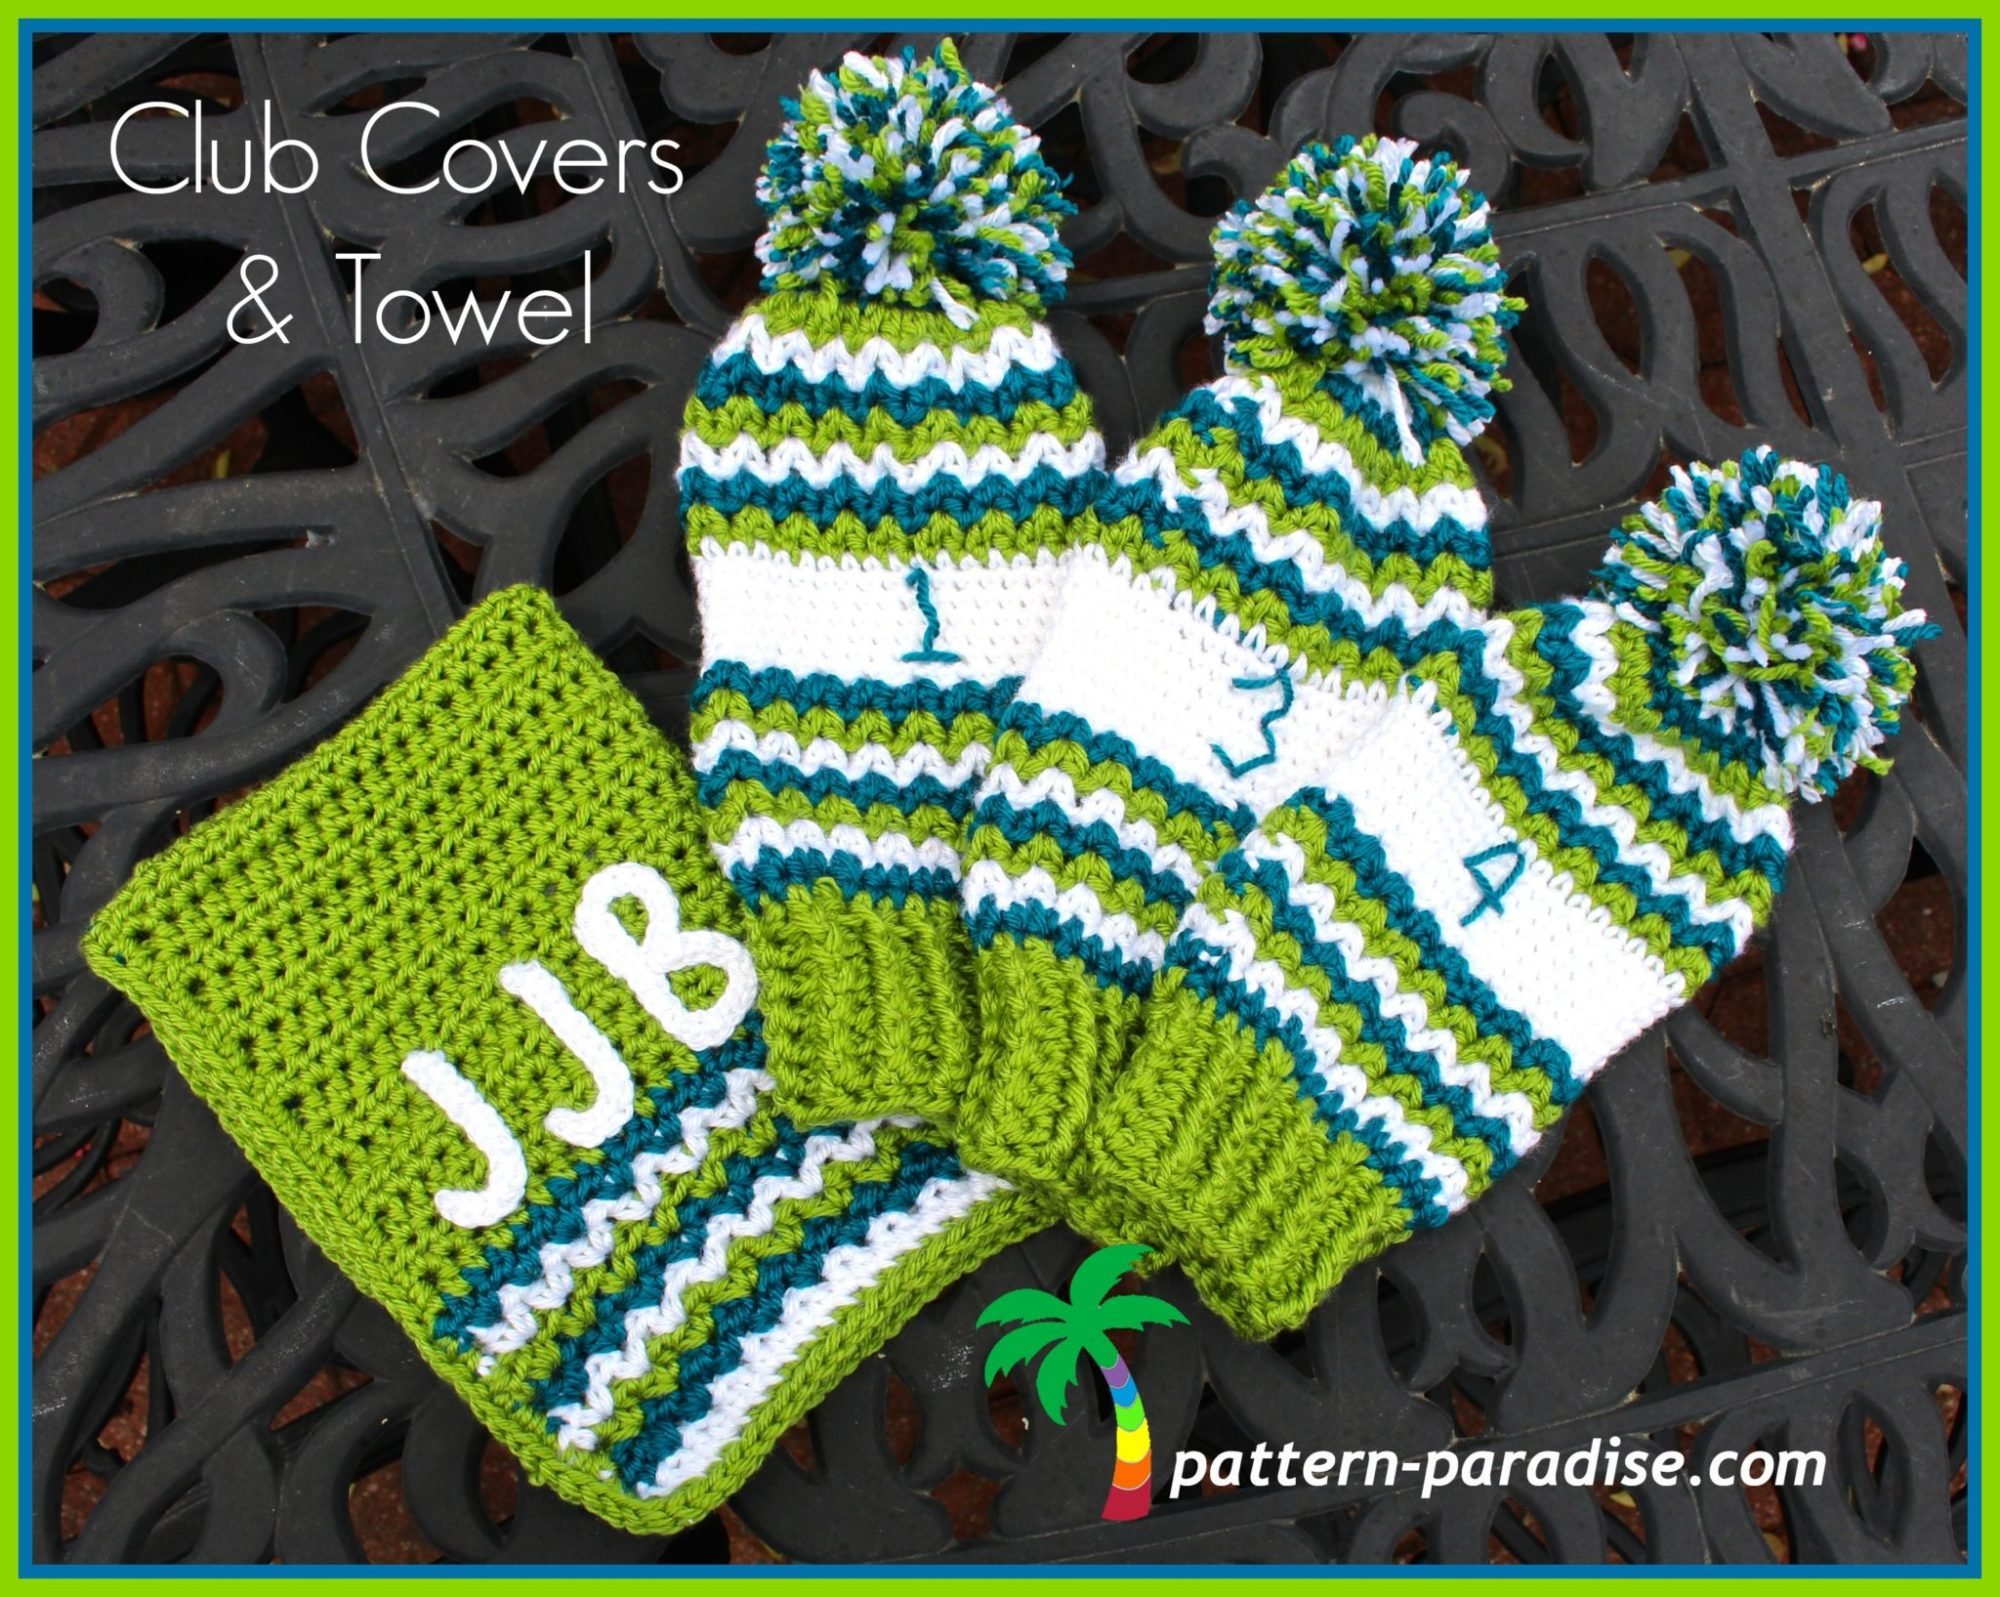 Free Crochet Pattern Golf Club Covers And Towel Pattern Paradise